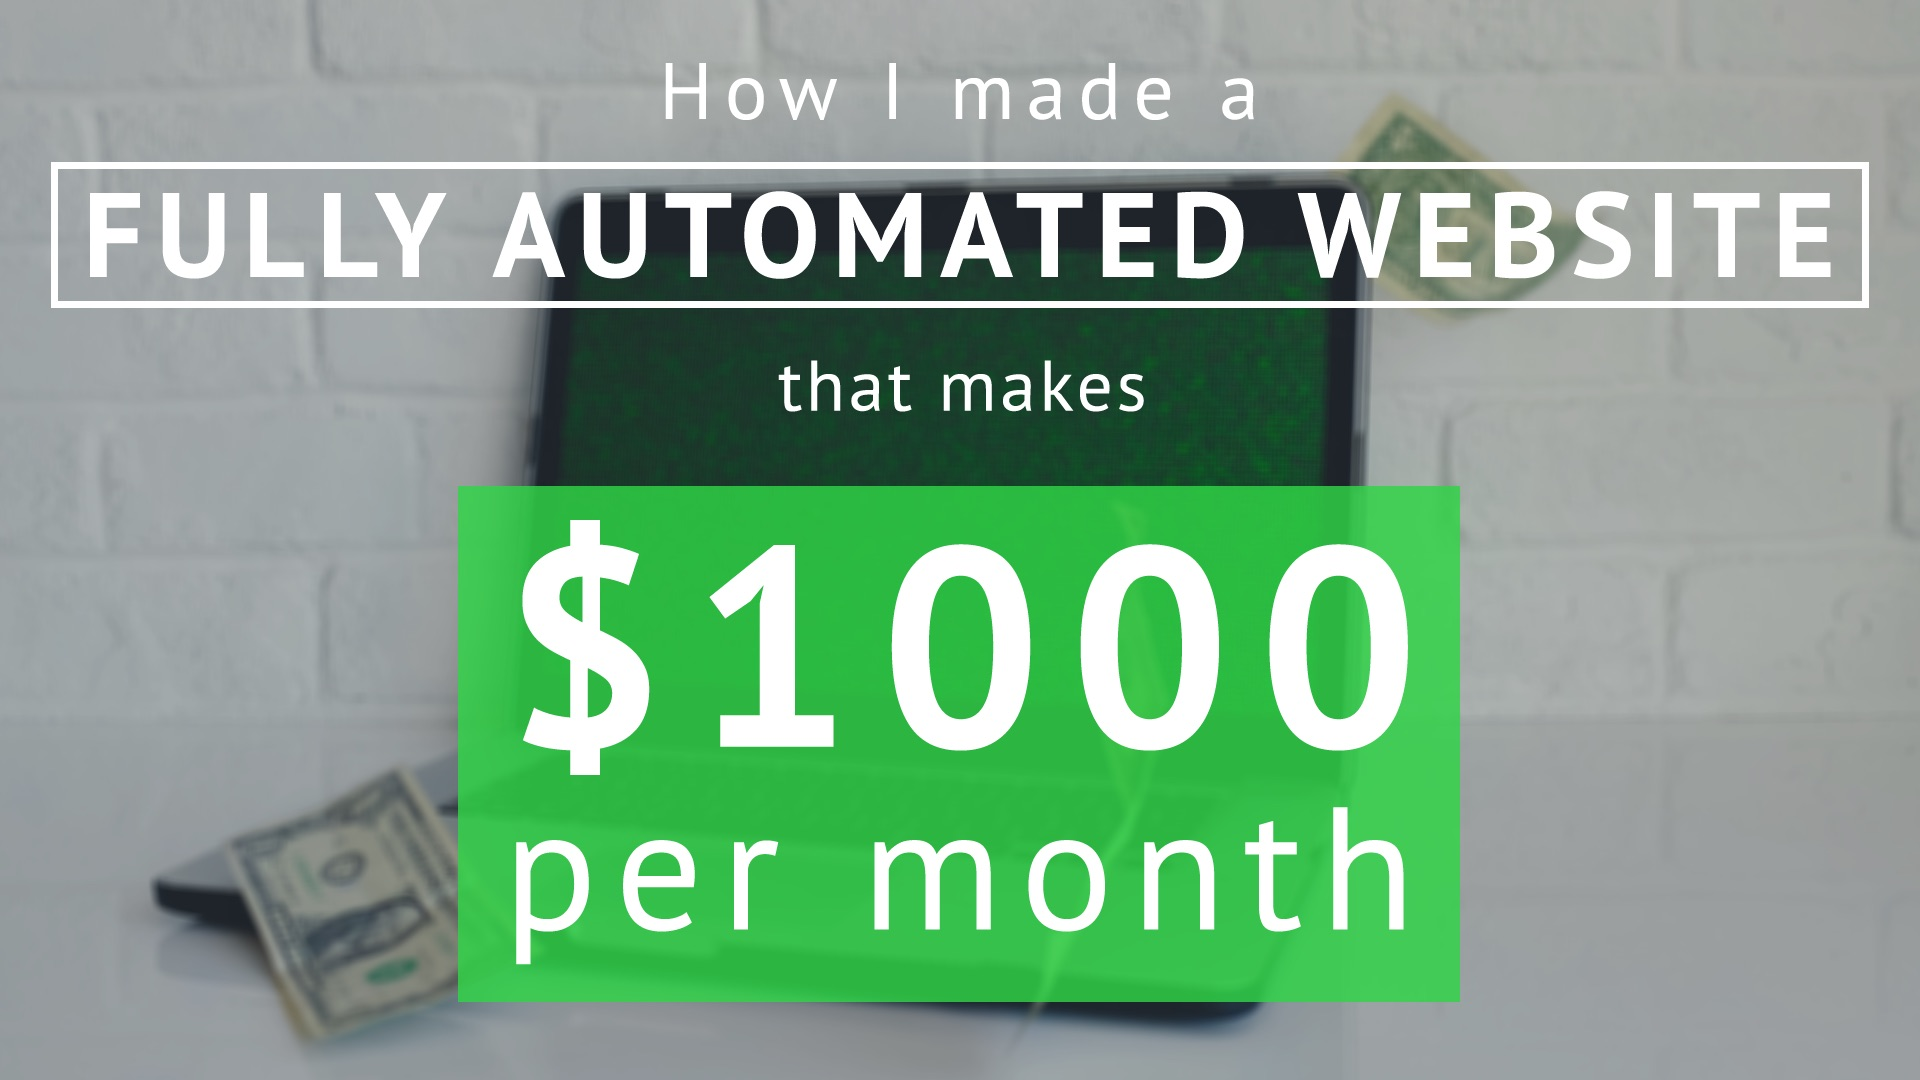 How I made a fully automated website that makes $1000 per month